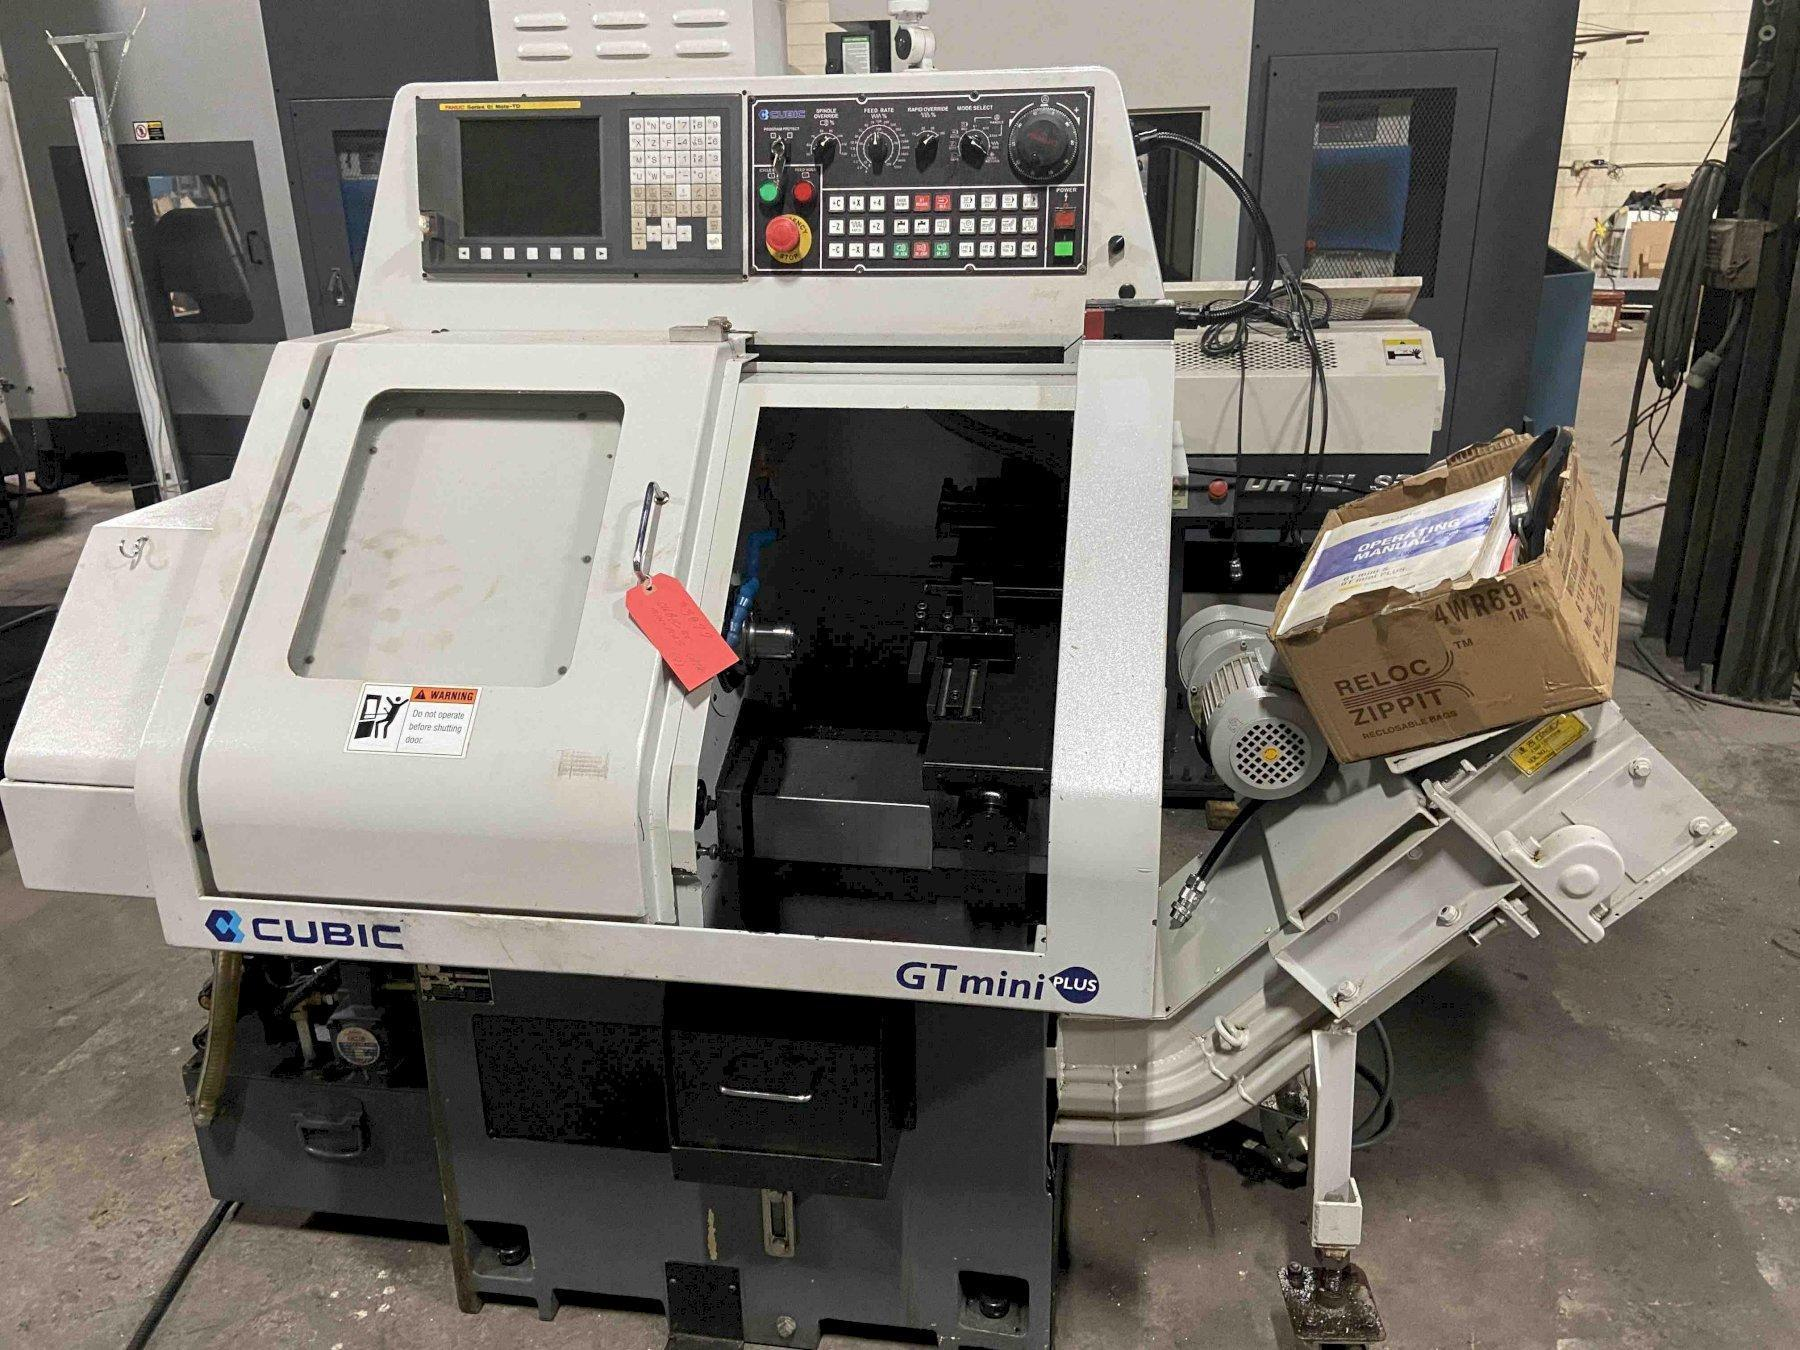 USED CUBIC GT MINI PLUS GANG TOOL CNC LATHE, STOCK # 10662, YEAR 2015